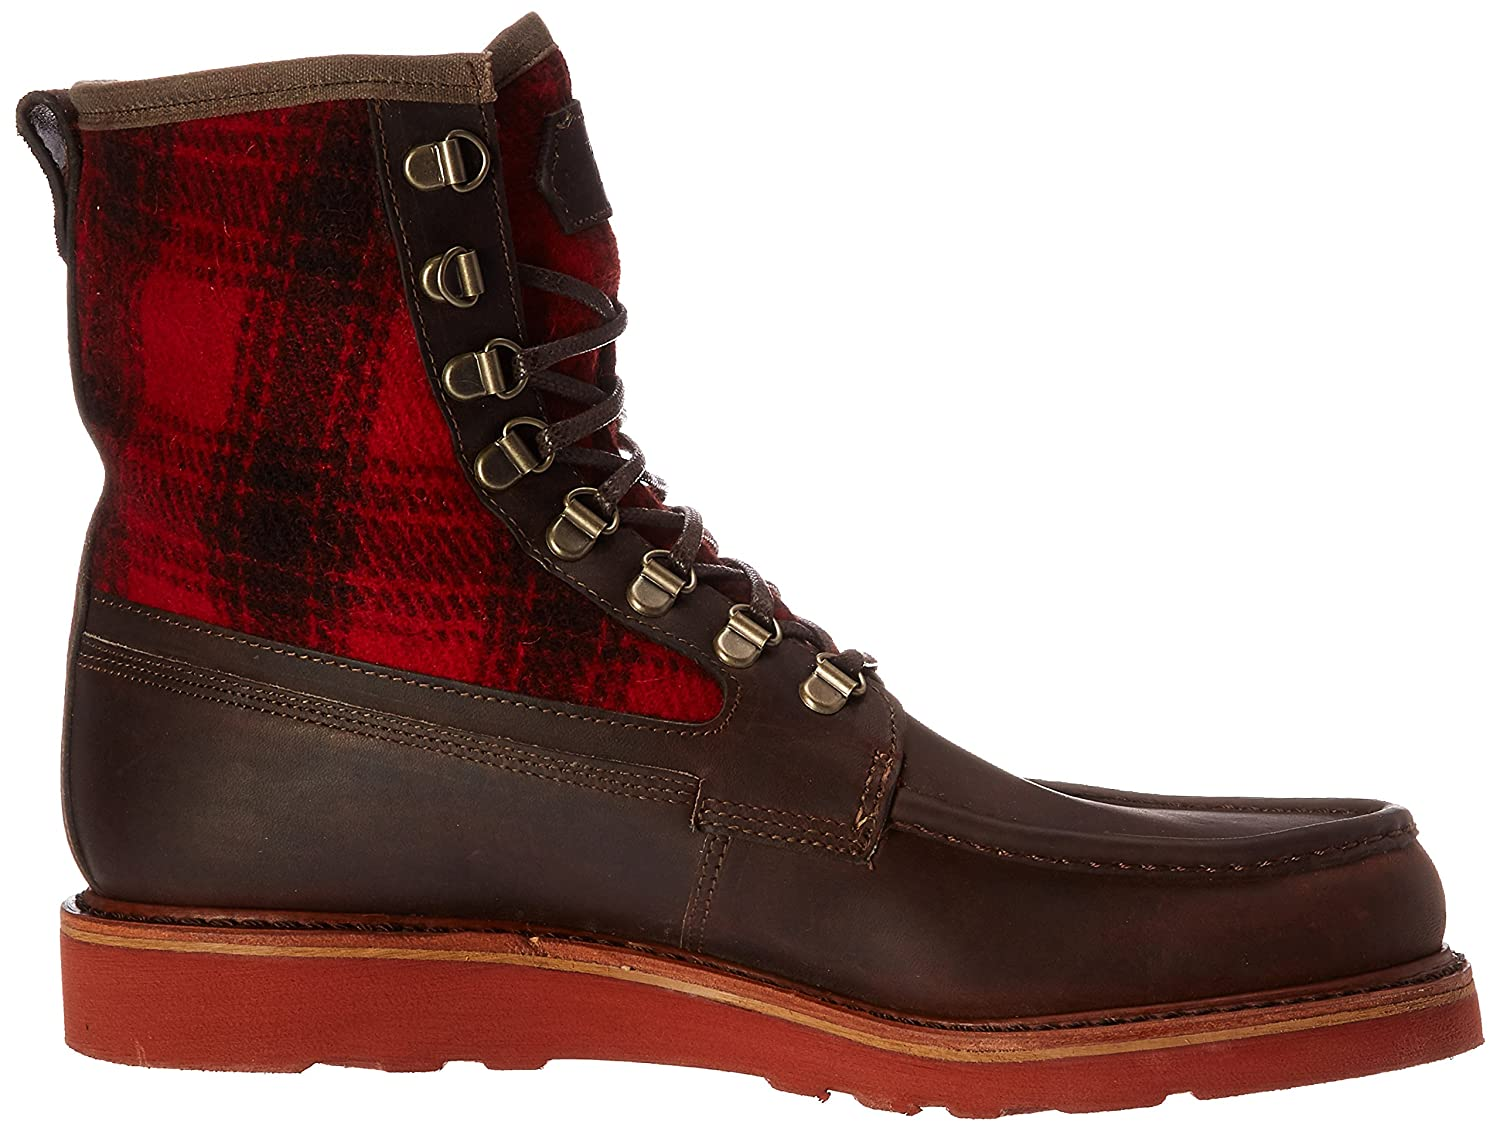 66c1b87bd86 Wolverine 1883 Men's Made in The USA Peninsula Boot Winter, Brown ...